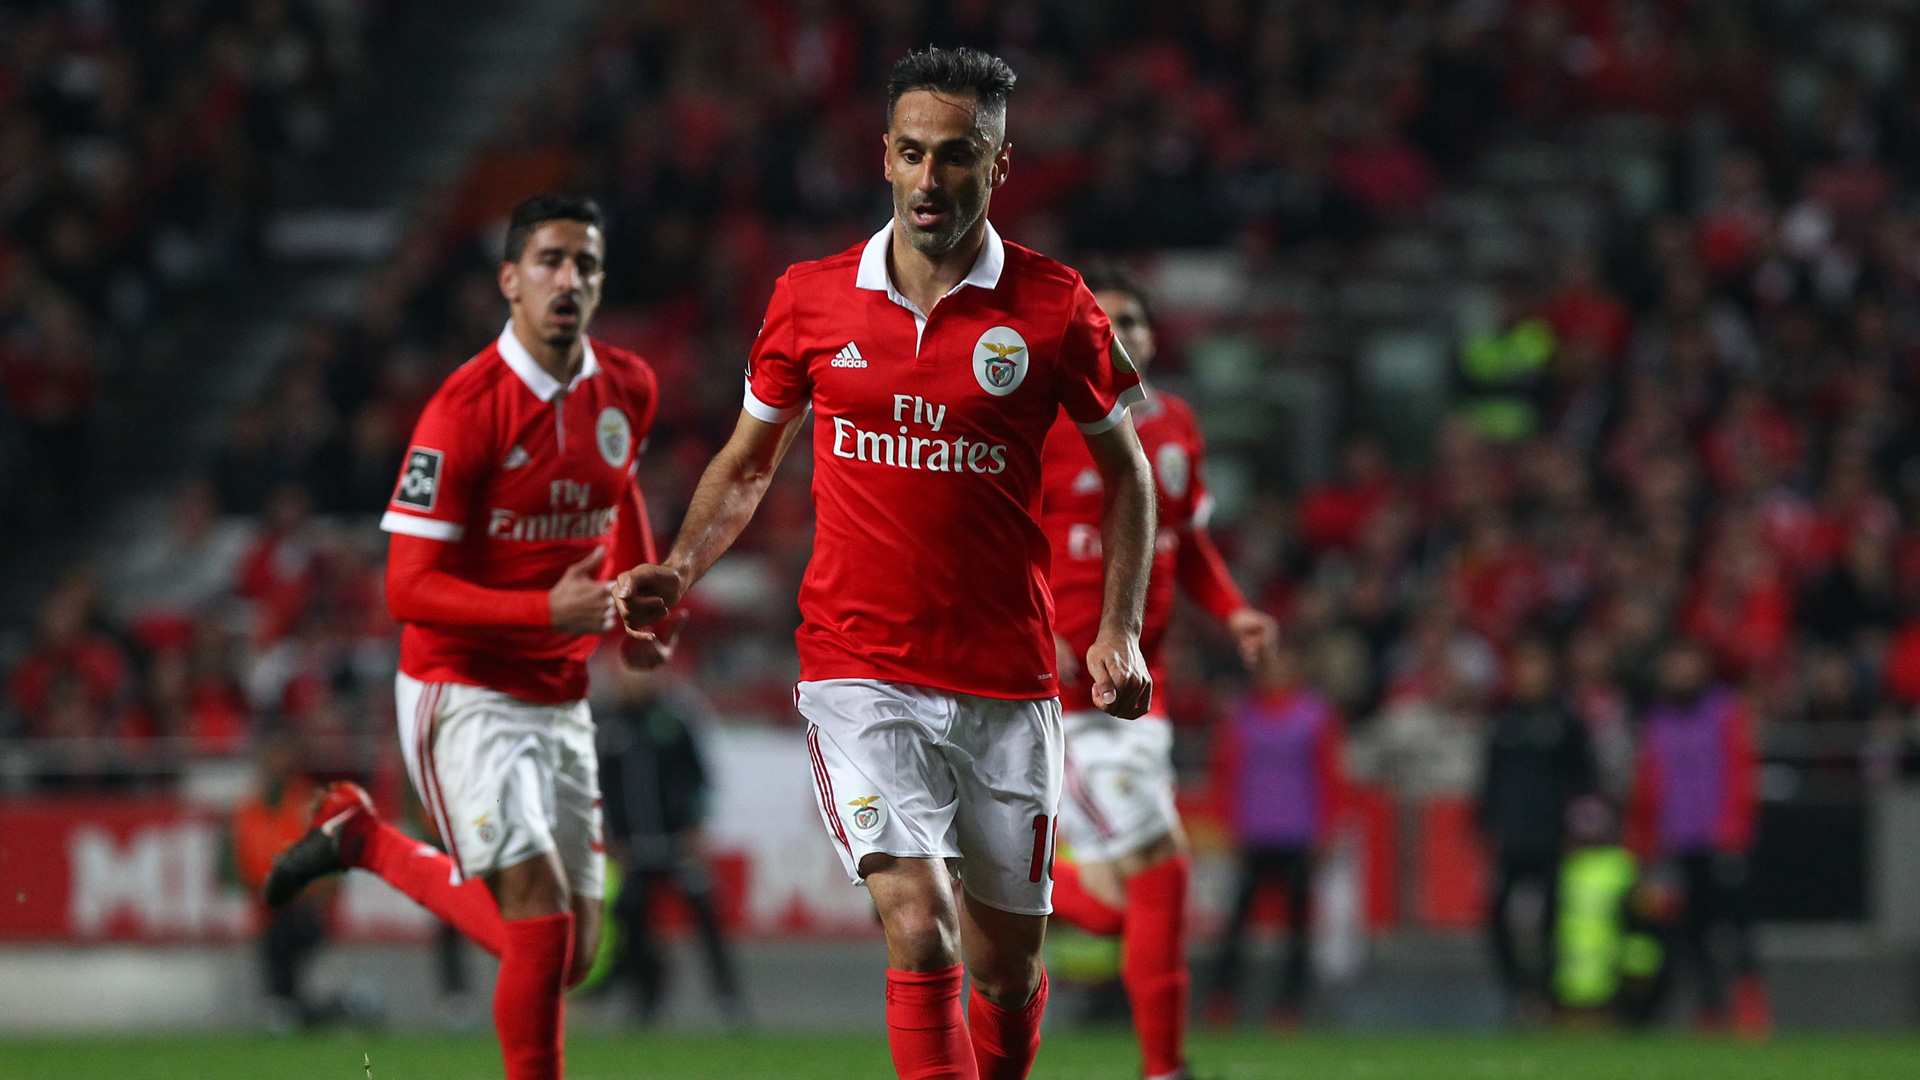 Benfica chaves live stream